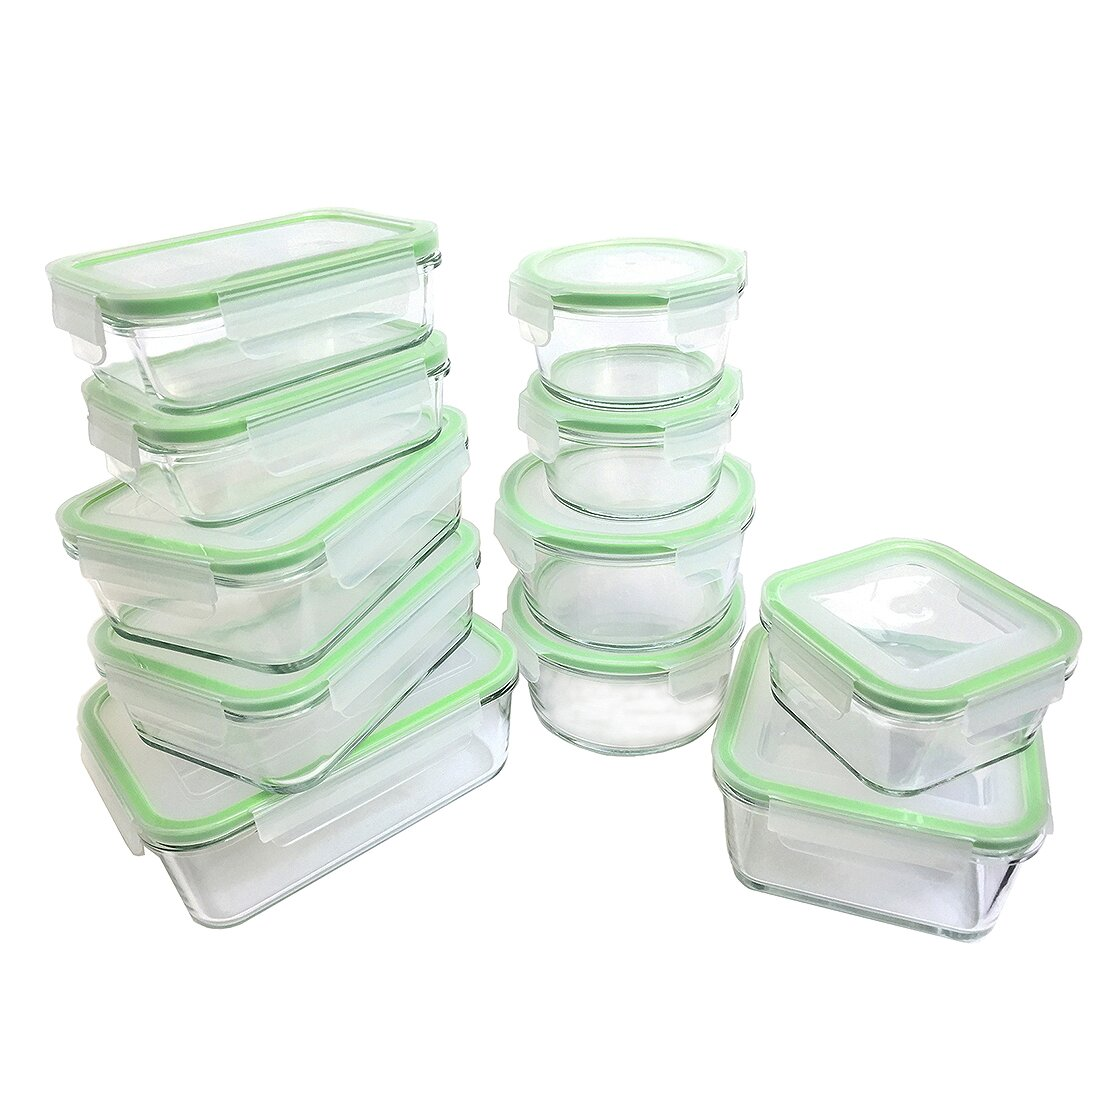 Kinetic Glassworks 22 Piece Oven Safe Glass Food Storage  : Kinetic Glassworks 22 Piece Food Storage Container Set 55043 from www.wayfair.com size 1100 x 1100 jpeg 189kB